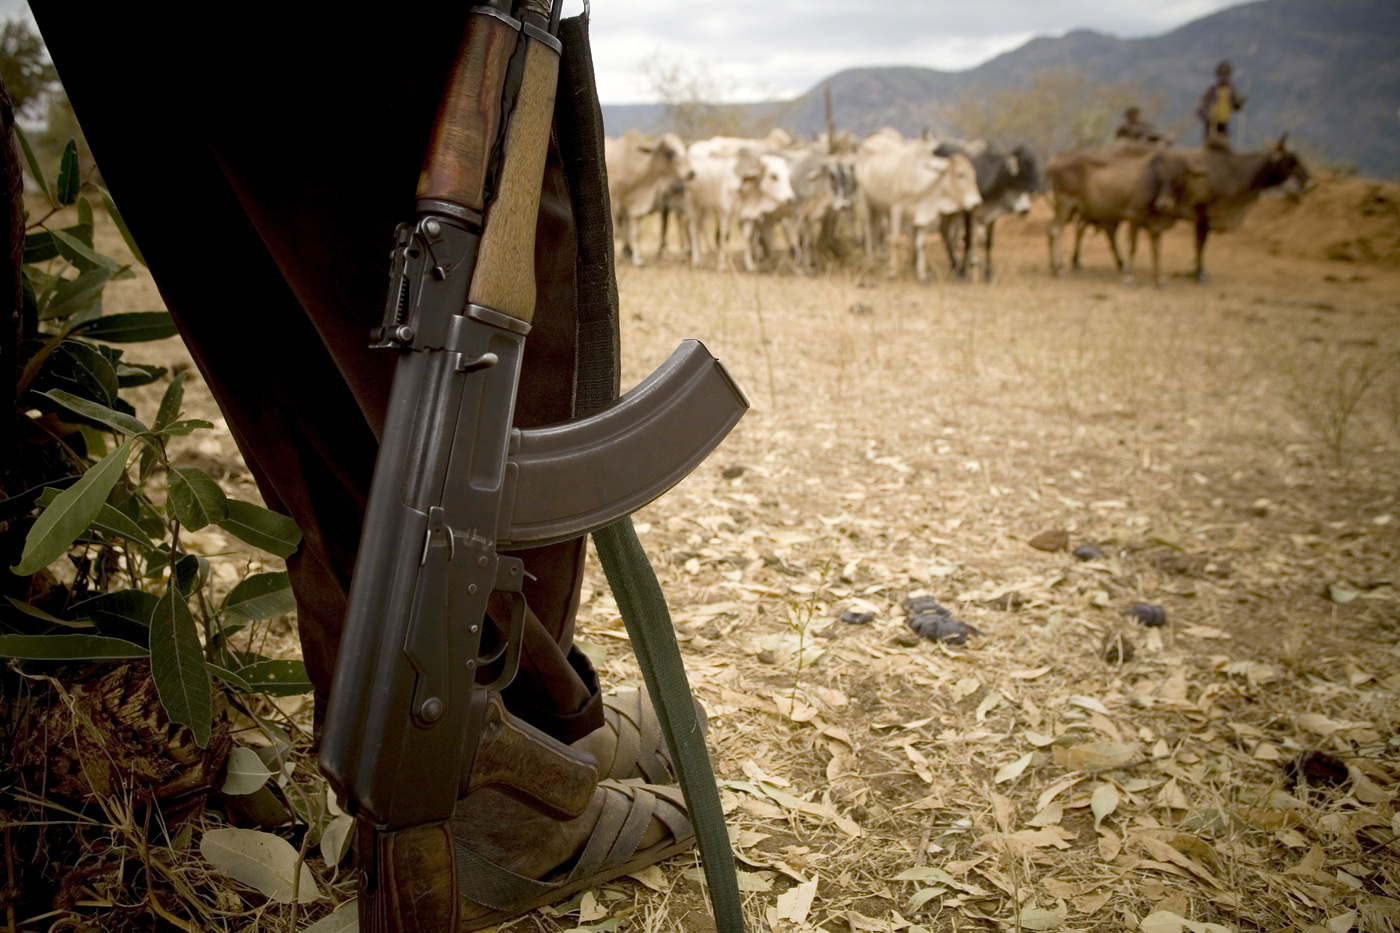 An armed herder looks after his cattle near the border town of Moyale, Kenya